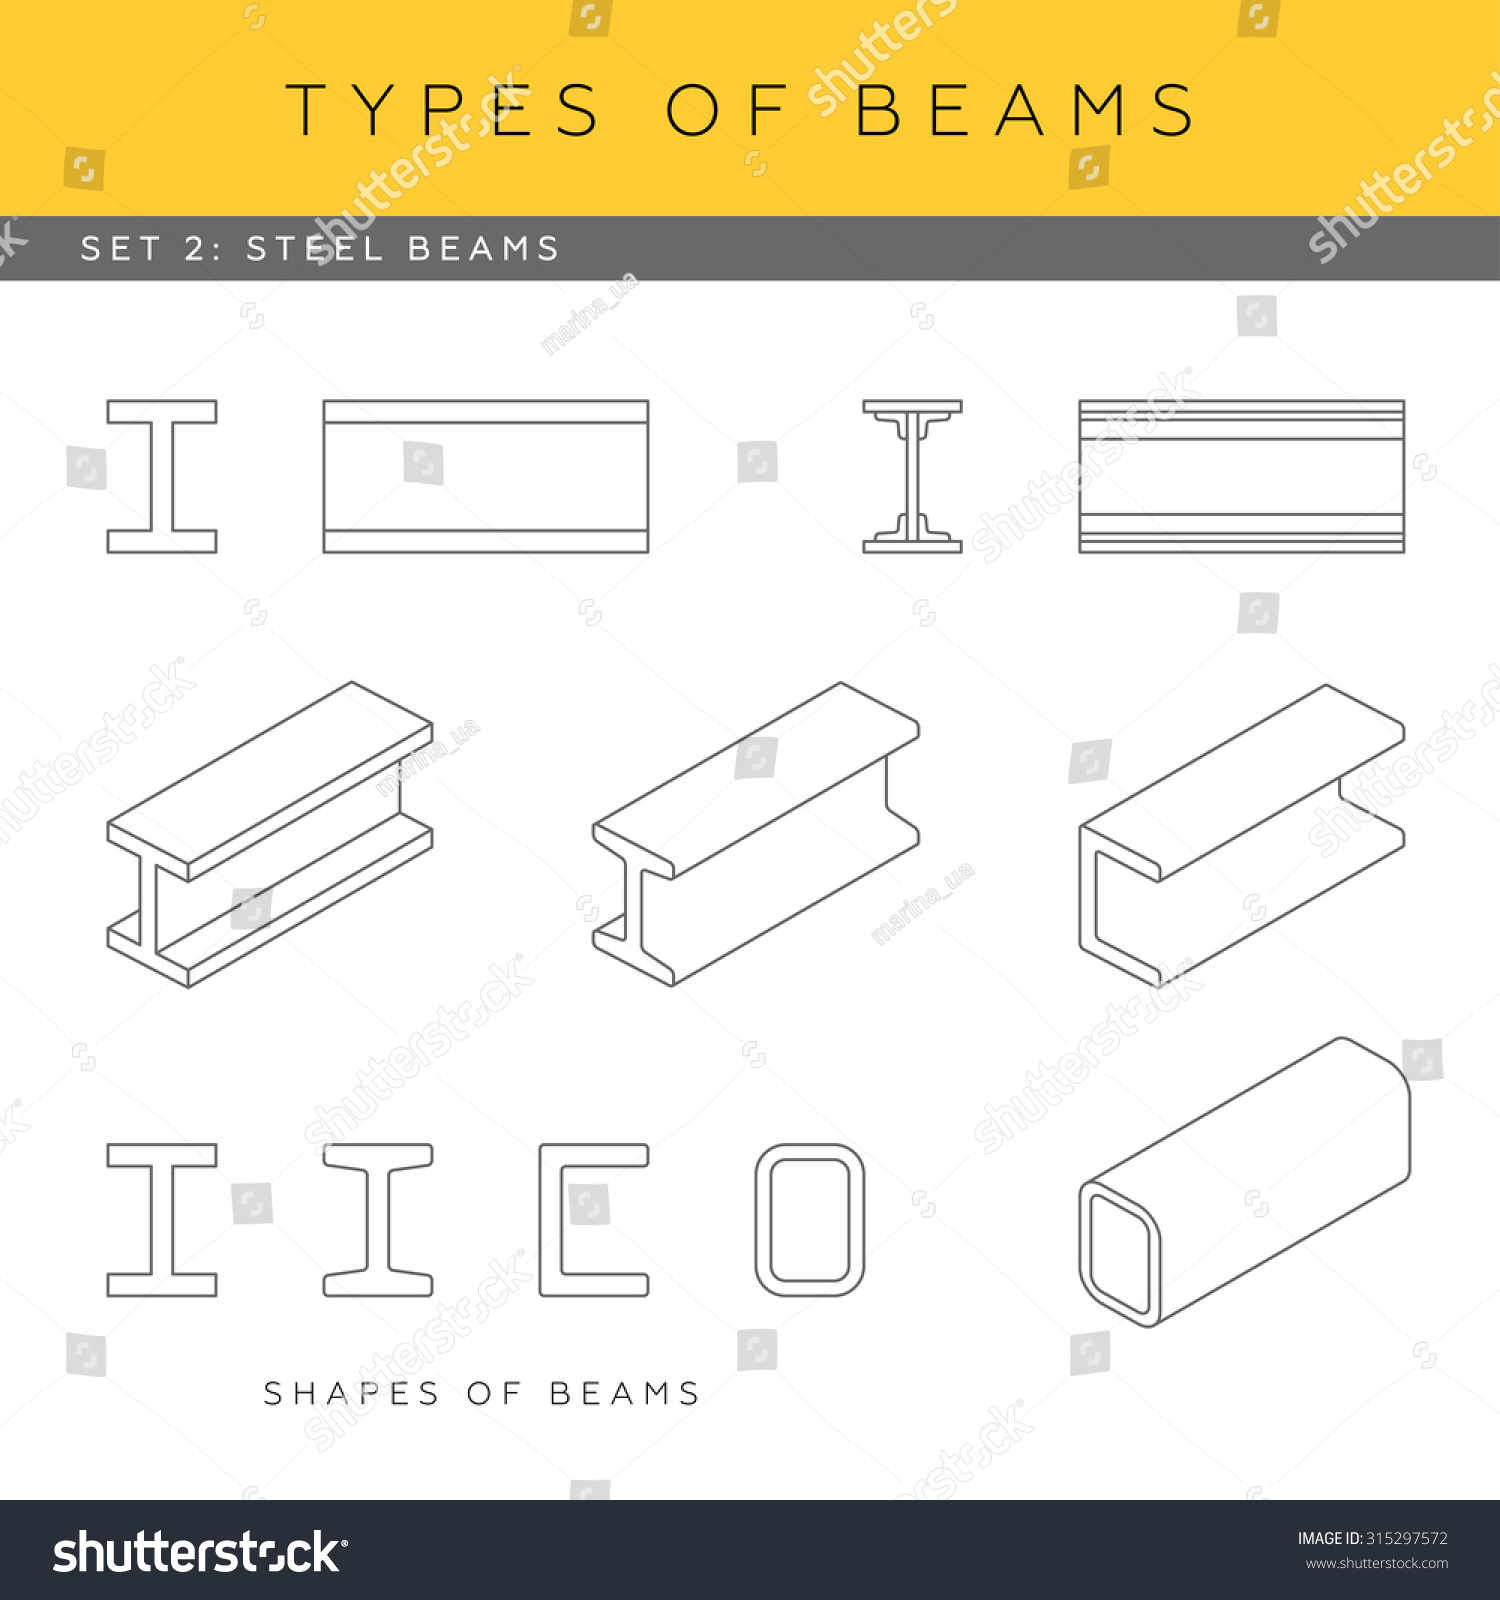 Types of i beams bing images